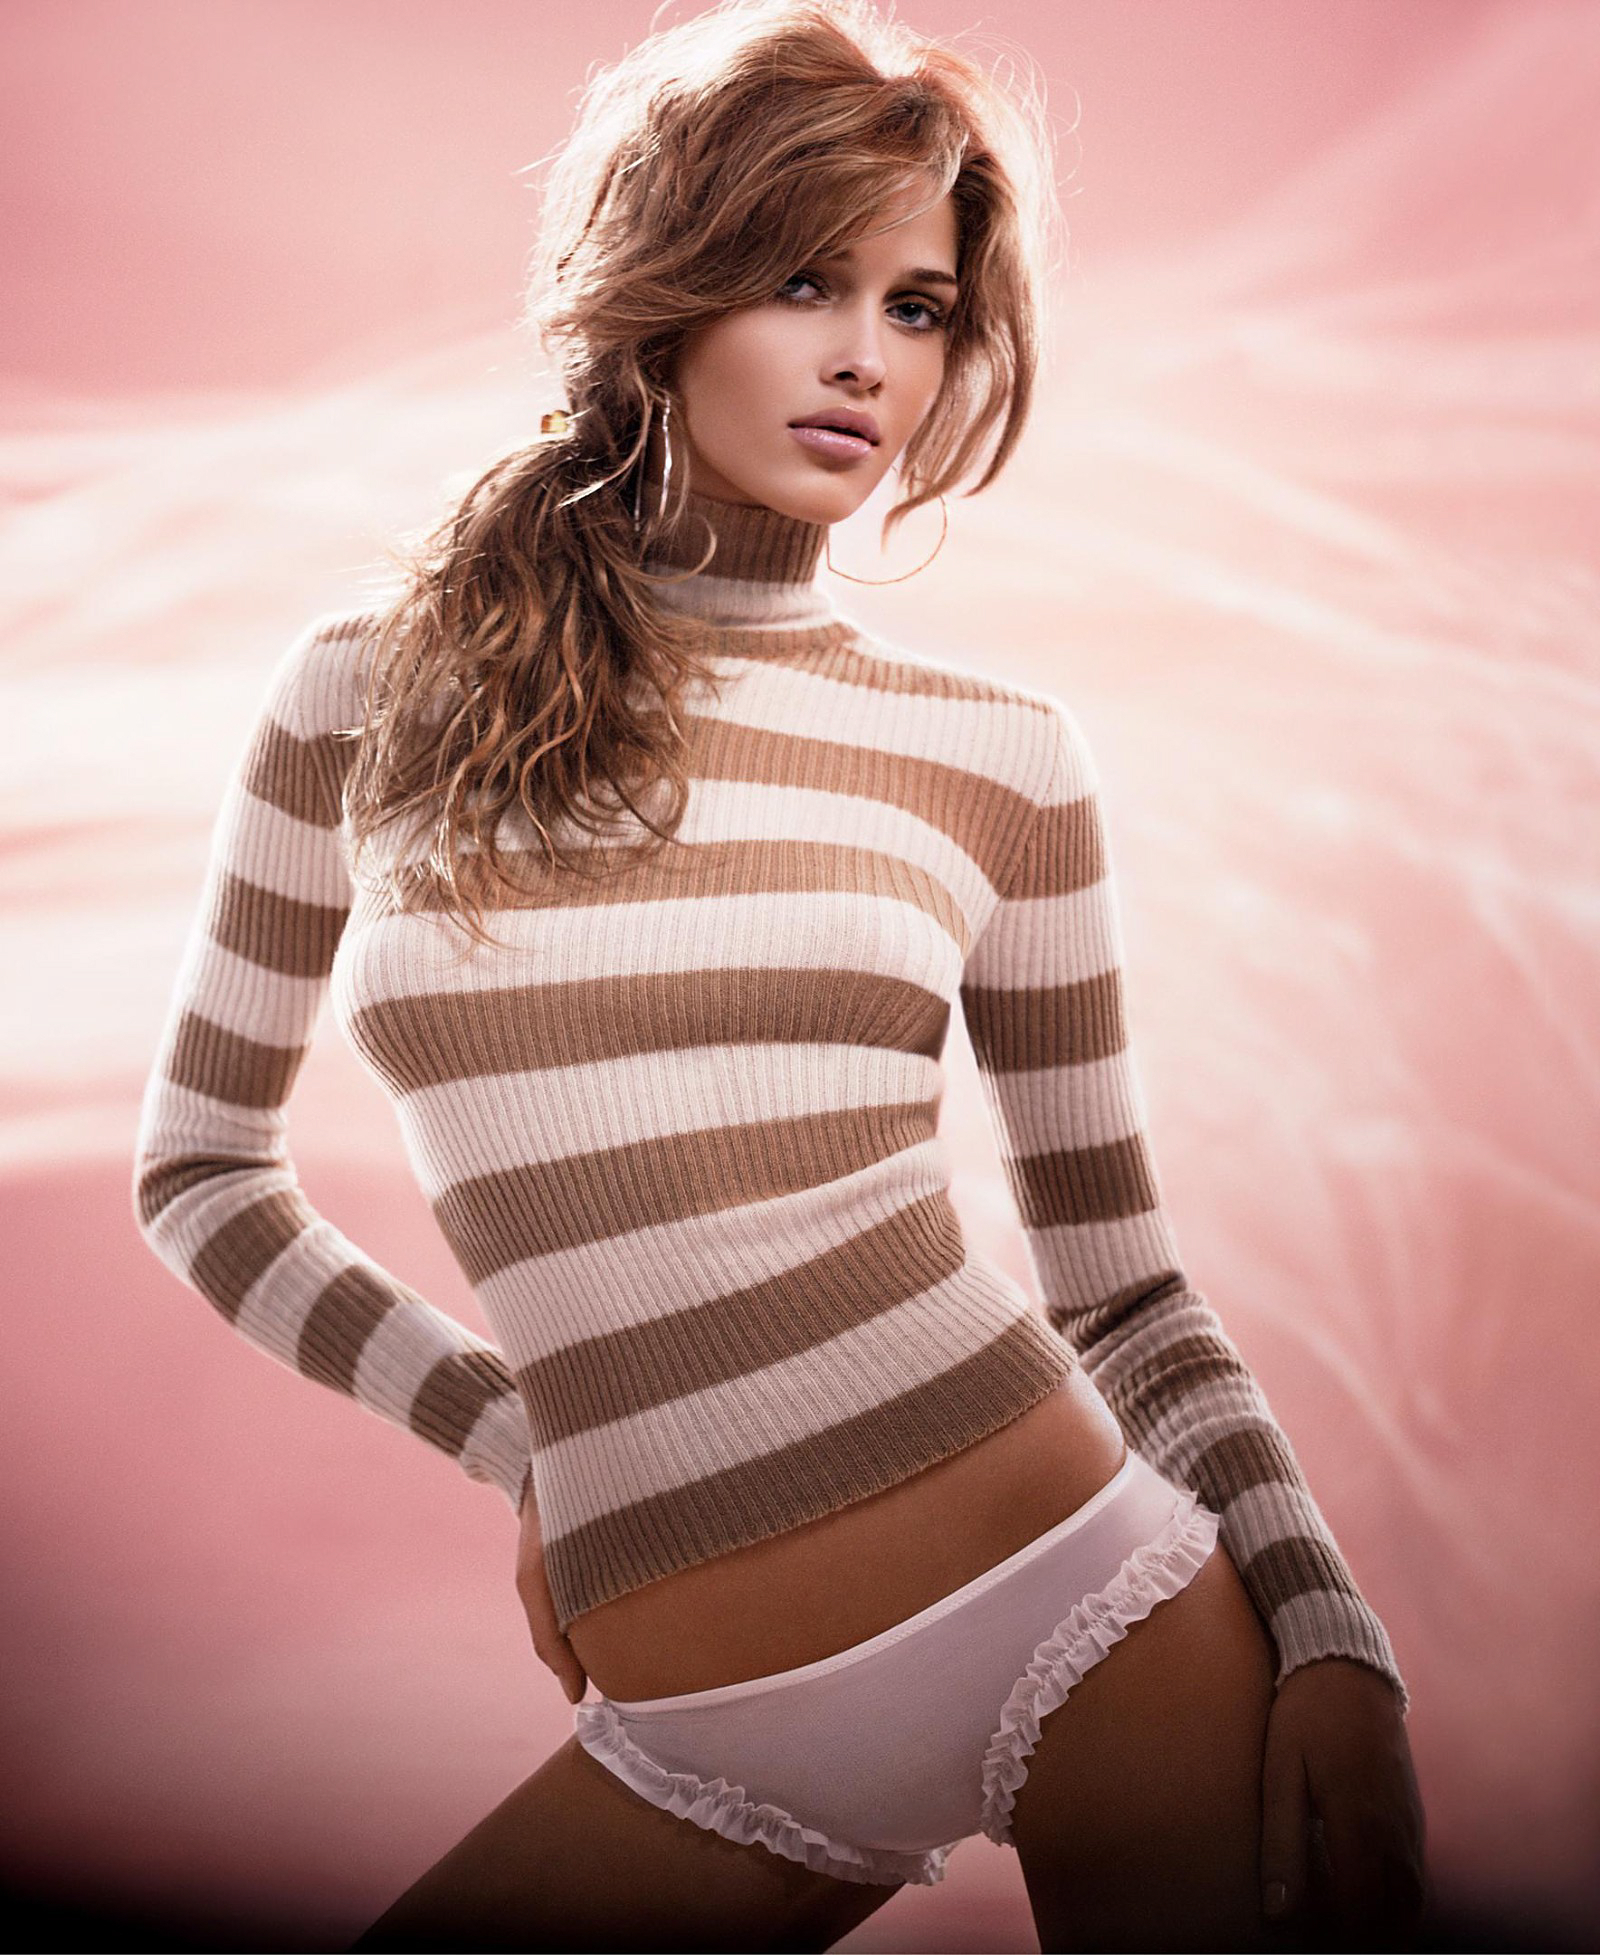 Ana Beatriz Barros - Wallpaper Hot